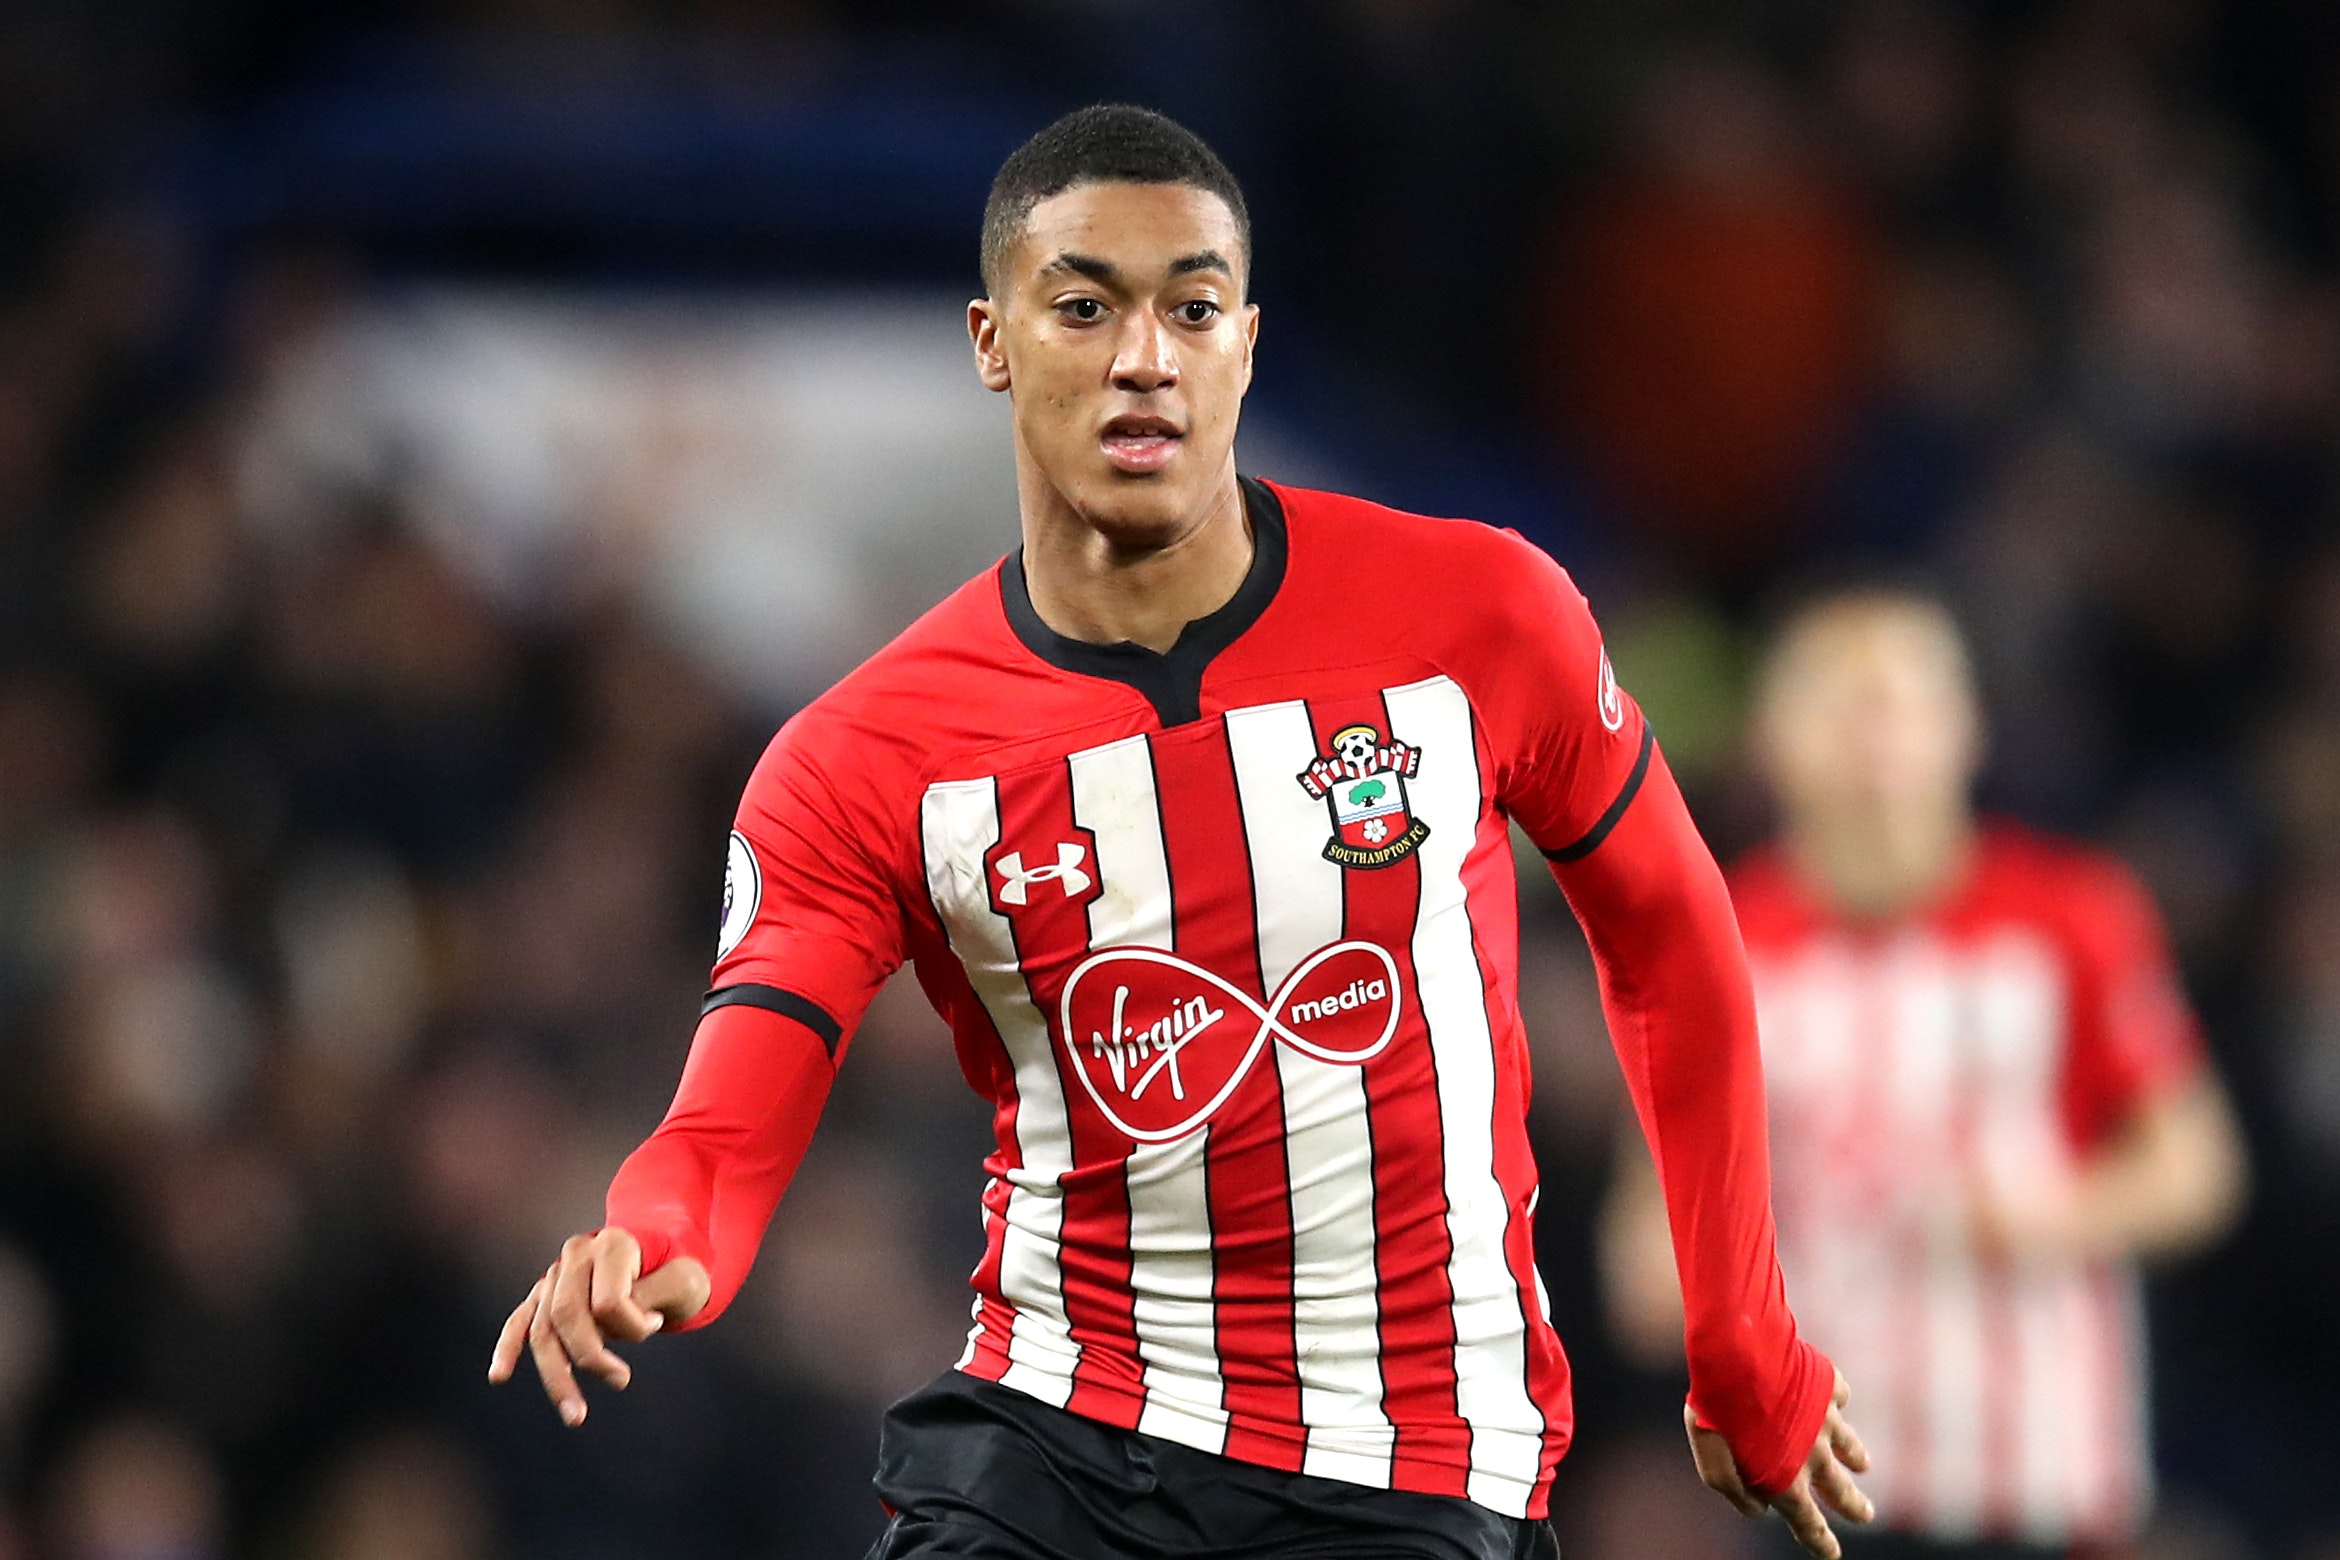 Yan Valery has signed a new long-term contract at Southampton